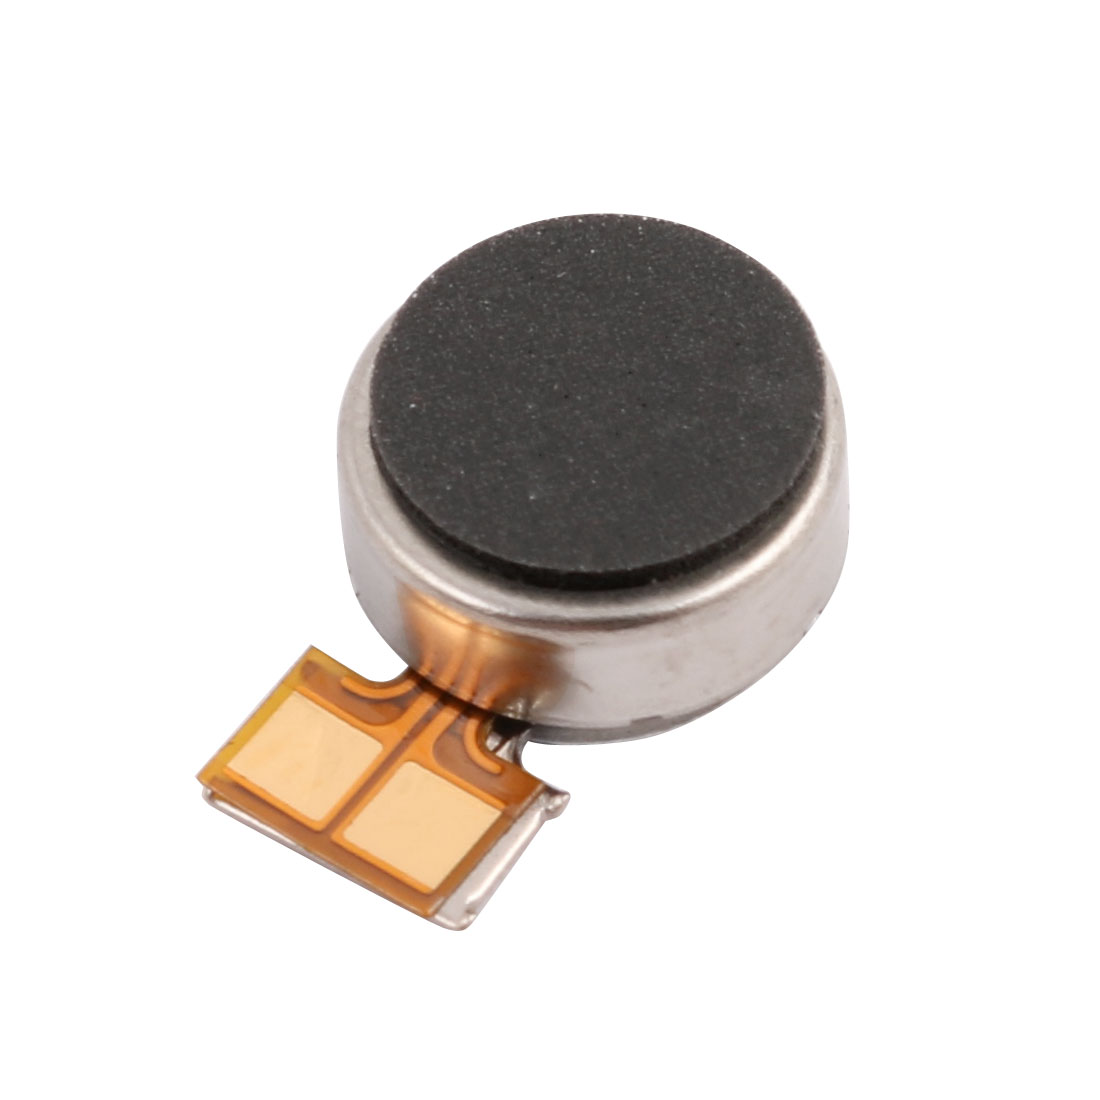 DC 3V 3.4mm x 9mm Dia Mobile Phone Coin Flat Vibrating Vibration Motor